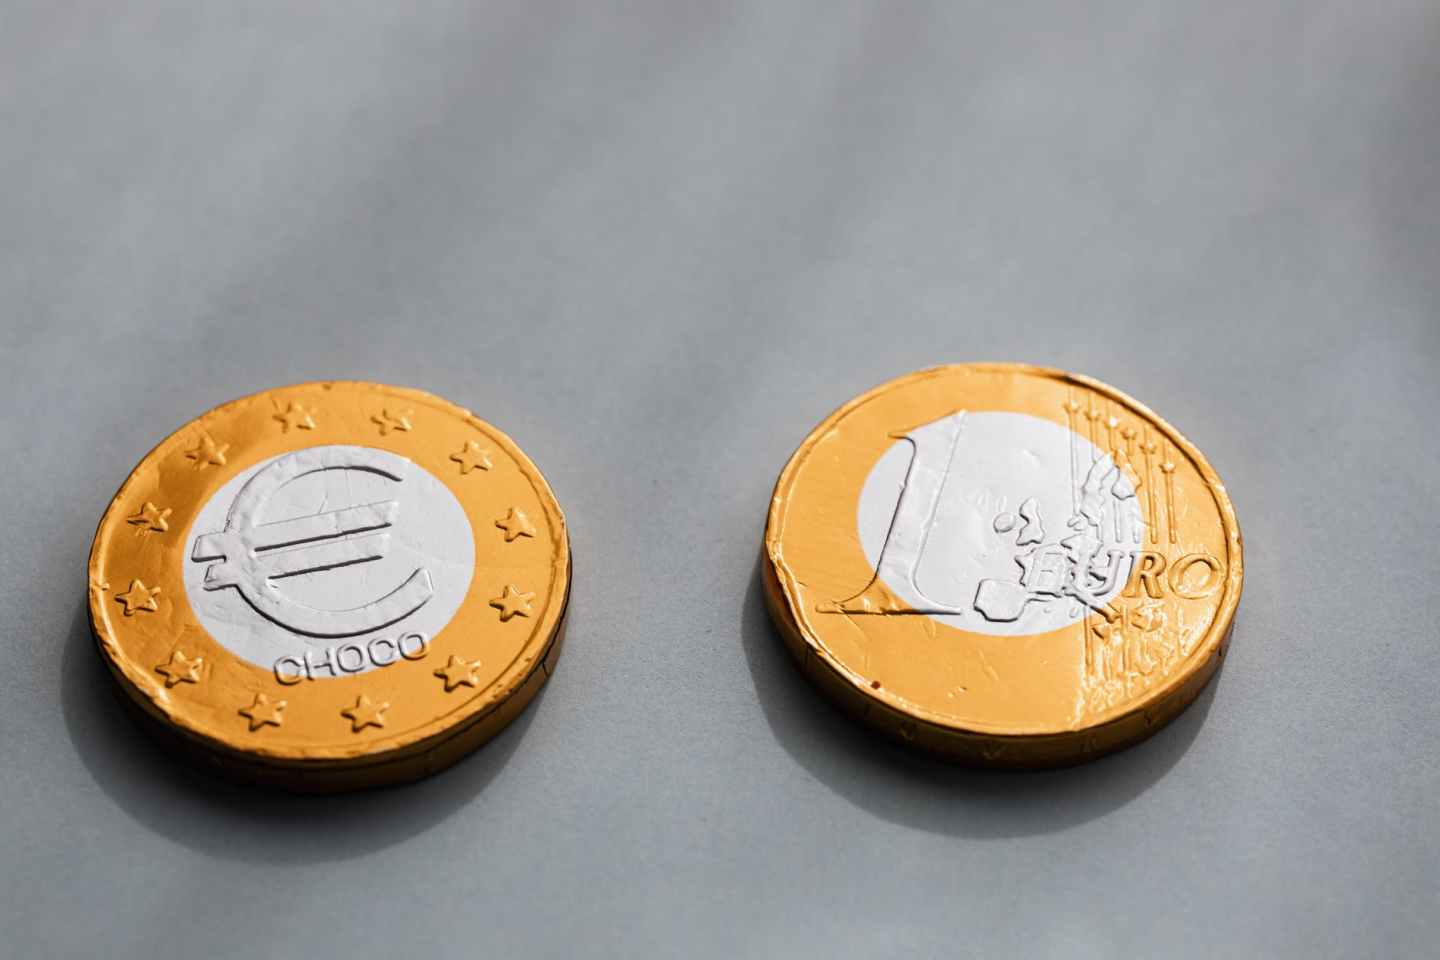 coins one euros lying on gray table